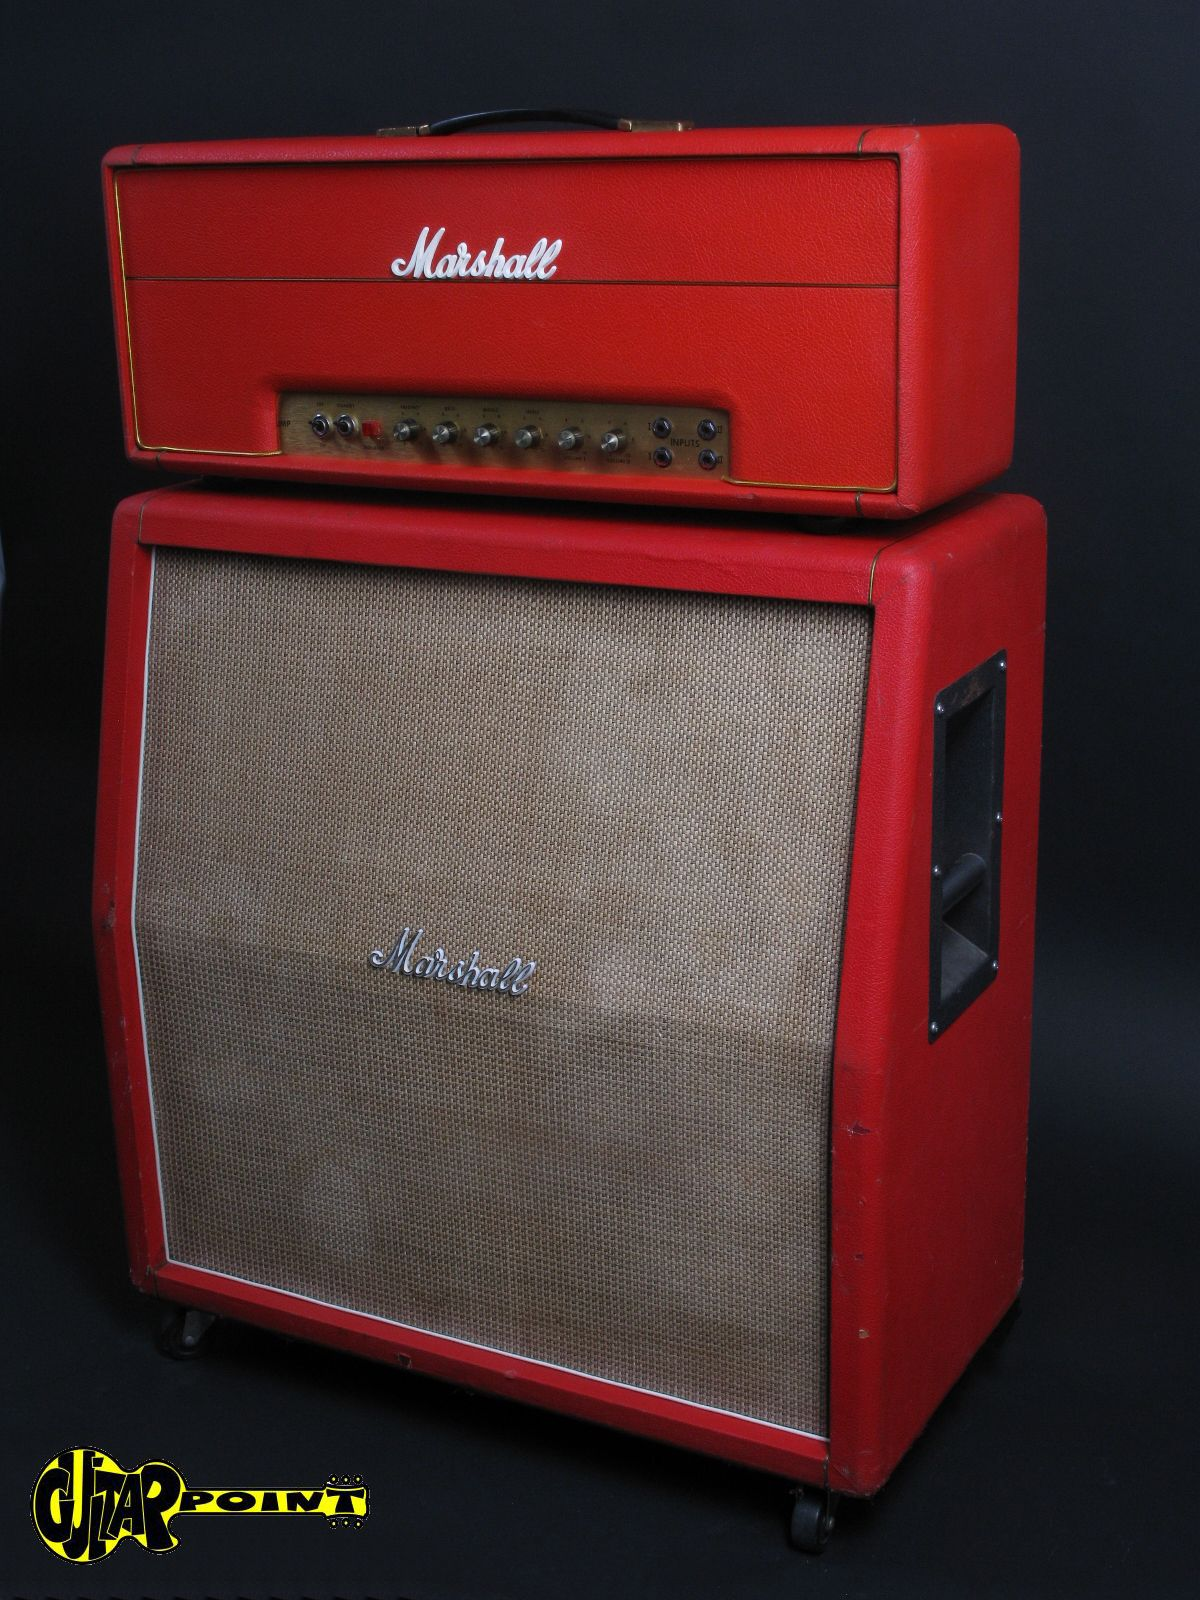 marshall 50 watt bass 1935 4x12 1971 red levant amp for sale guitarpoint. Black Bedroom Furniture Sets. Home Design Ideas